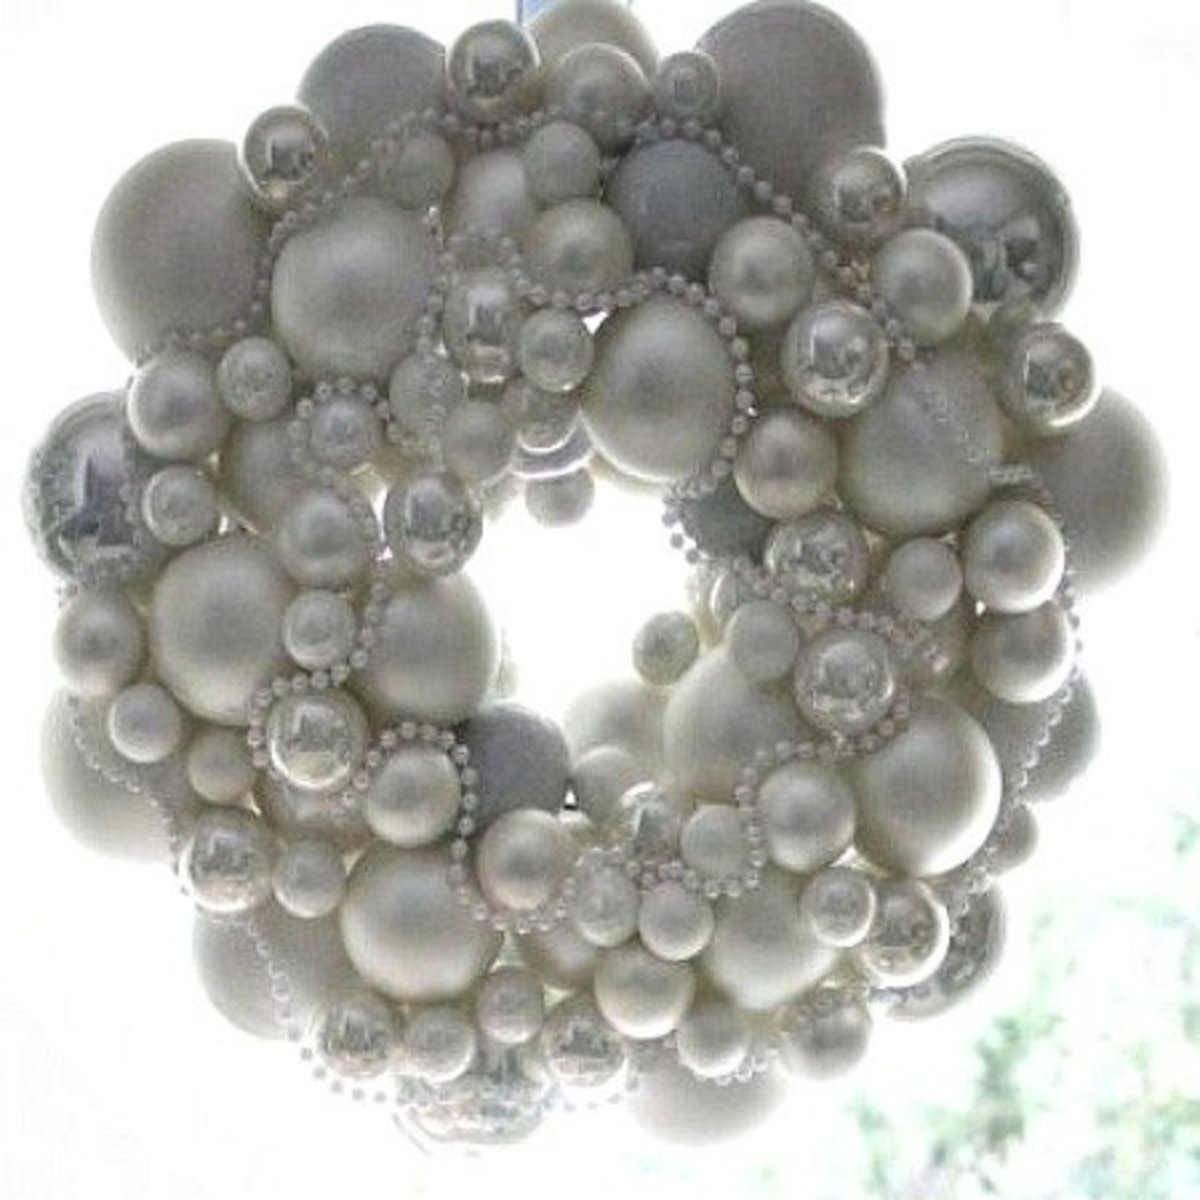 Image #2 - Pearl White Christmas Ornament Wreath